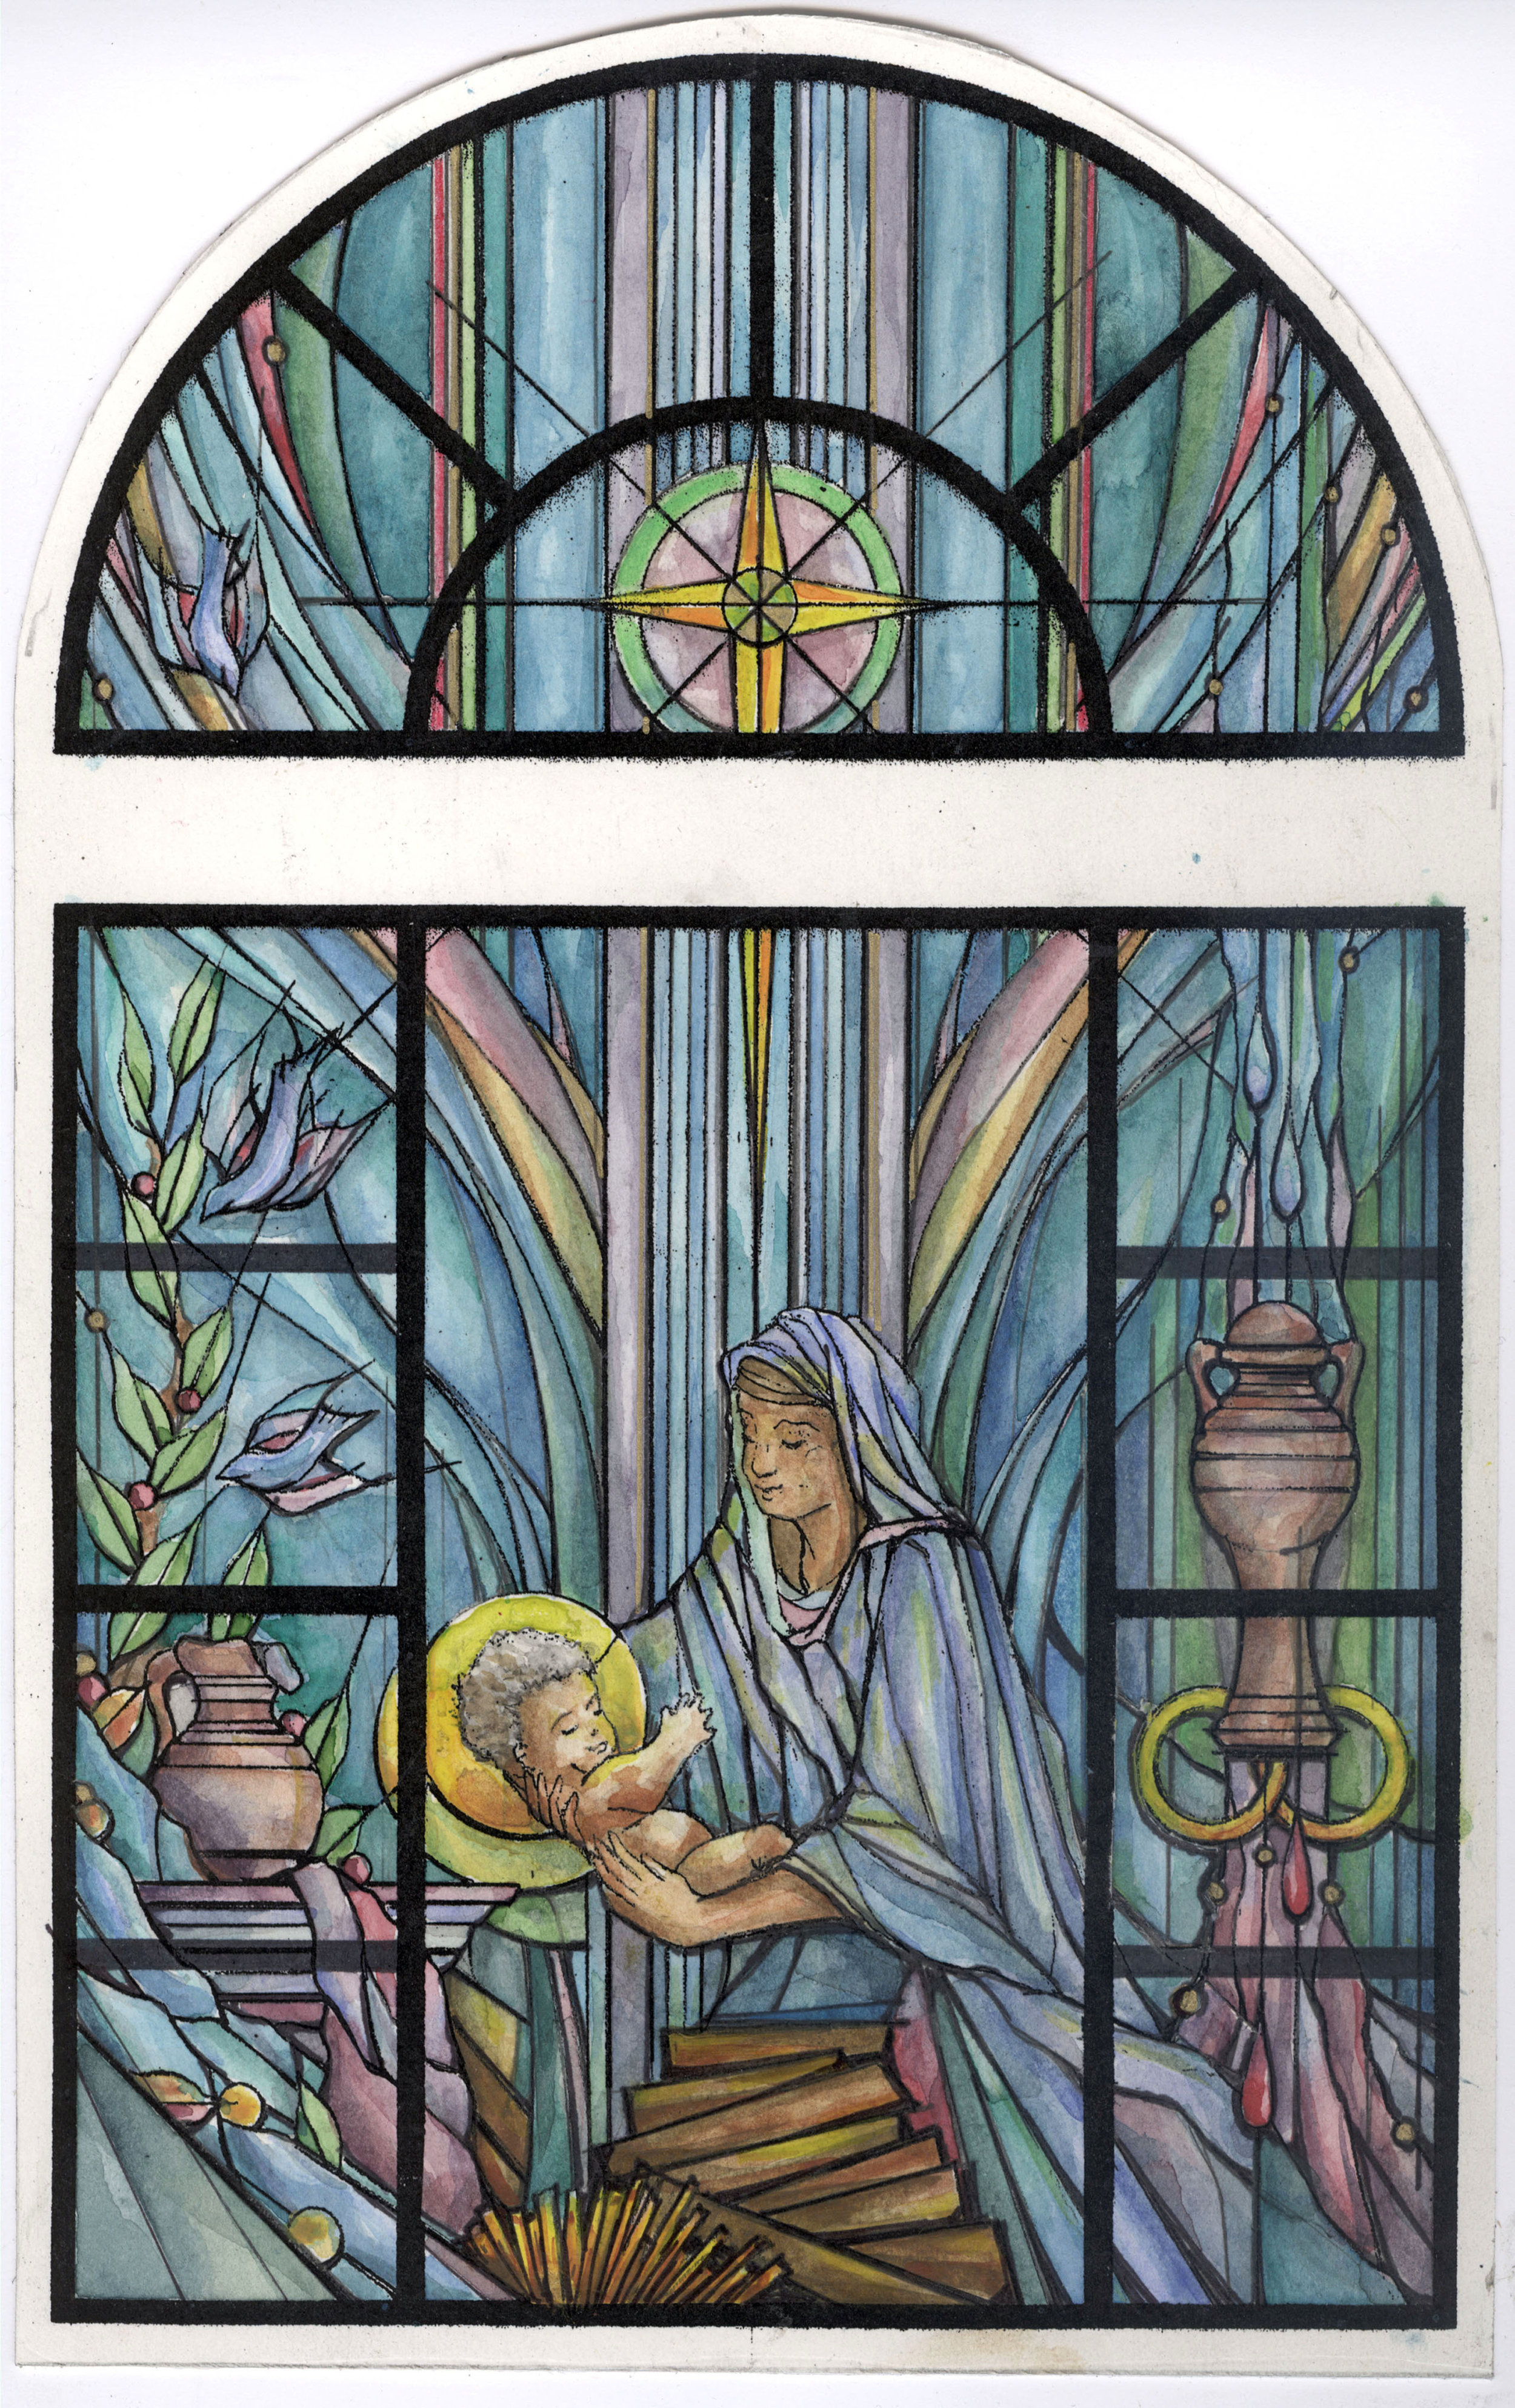 St. Marks_Nativity window design.jpg